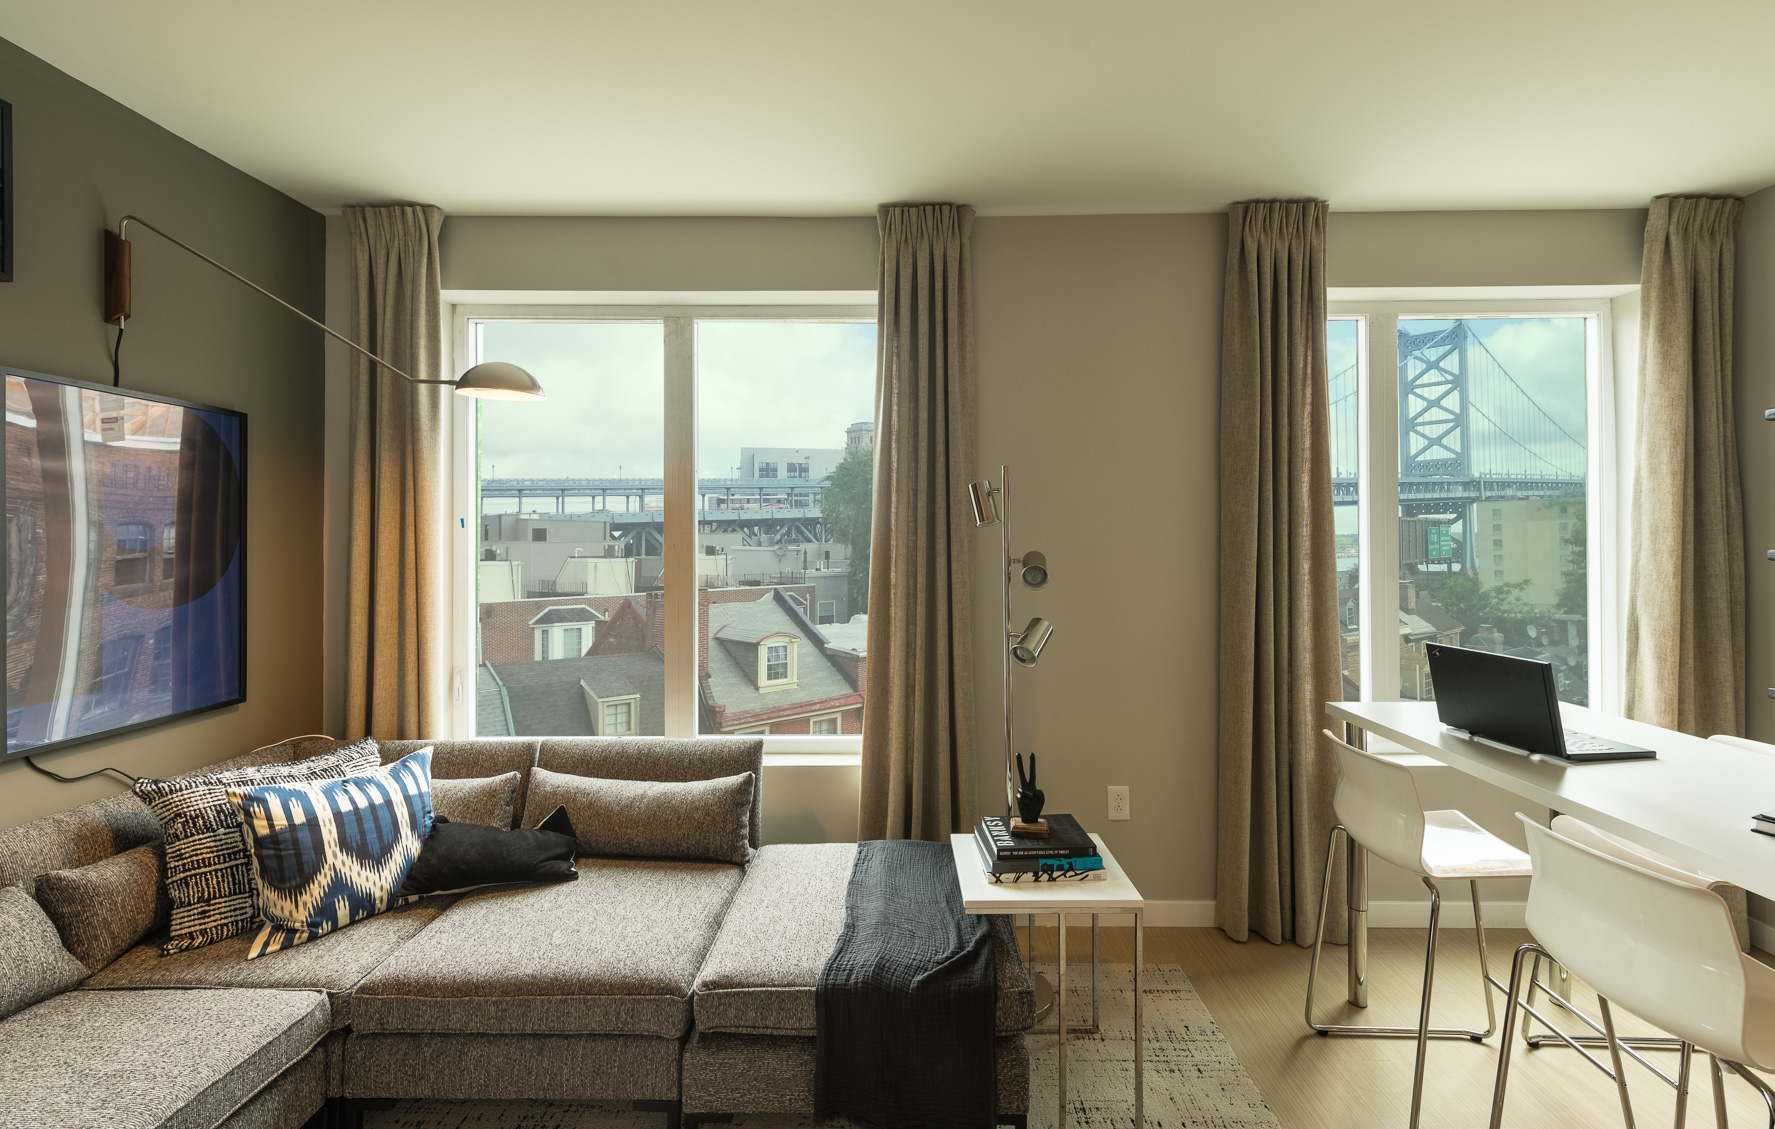 Splendid The National living room with hardwood flooring and luxurious features in Old City apartment rentals